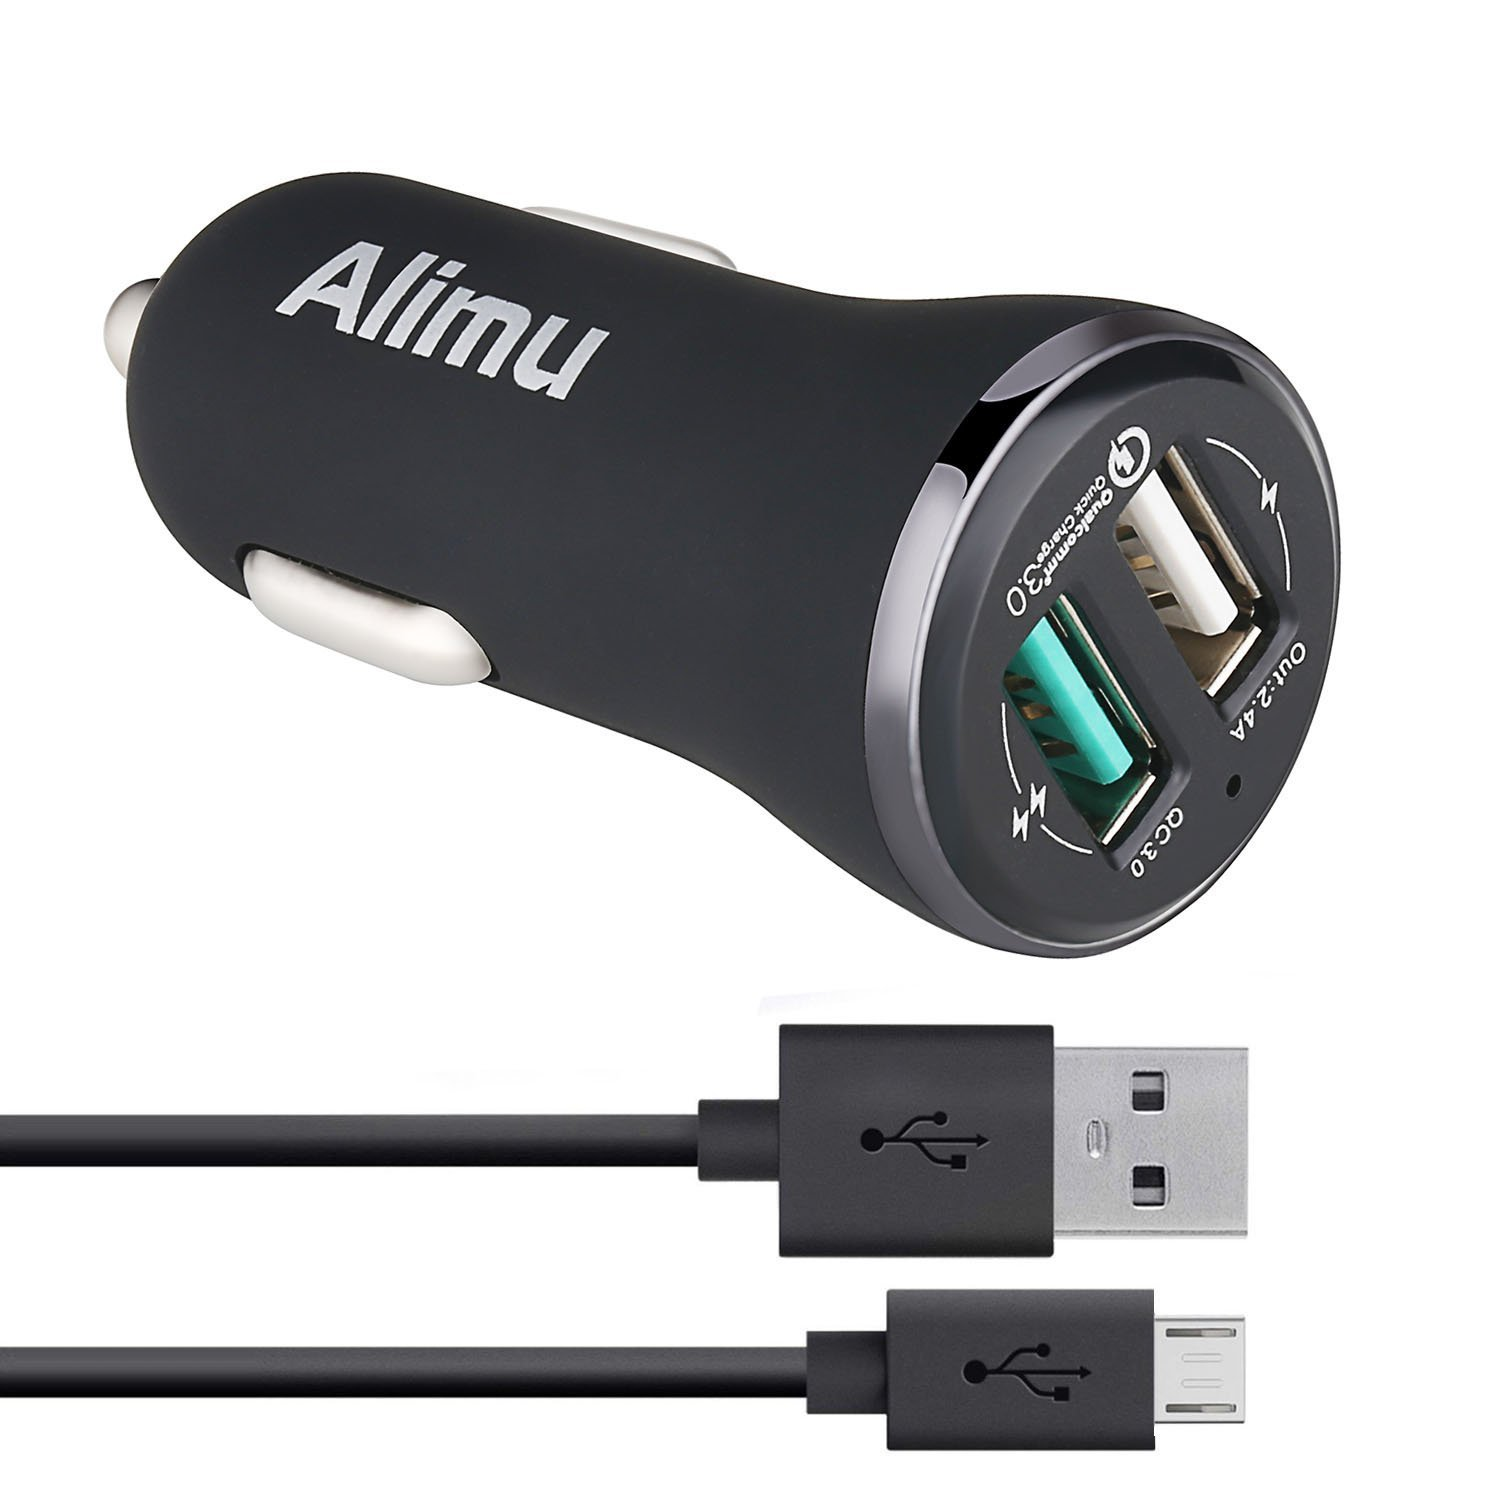 Samsung Galaxy S6 S7 Edge Plus Active Fast Car Charger,Alimu [Quick Charge 3.0] Rapid Charging Adapter for S6 S7,Note 5,HTC One M9 M8 A9,LG V10 G4,Sony,Moto,ASUS Phone with Micro-USB Cable by Alimu